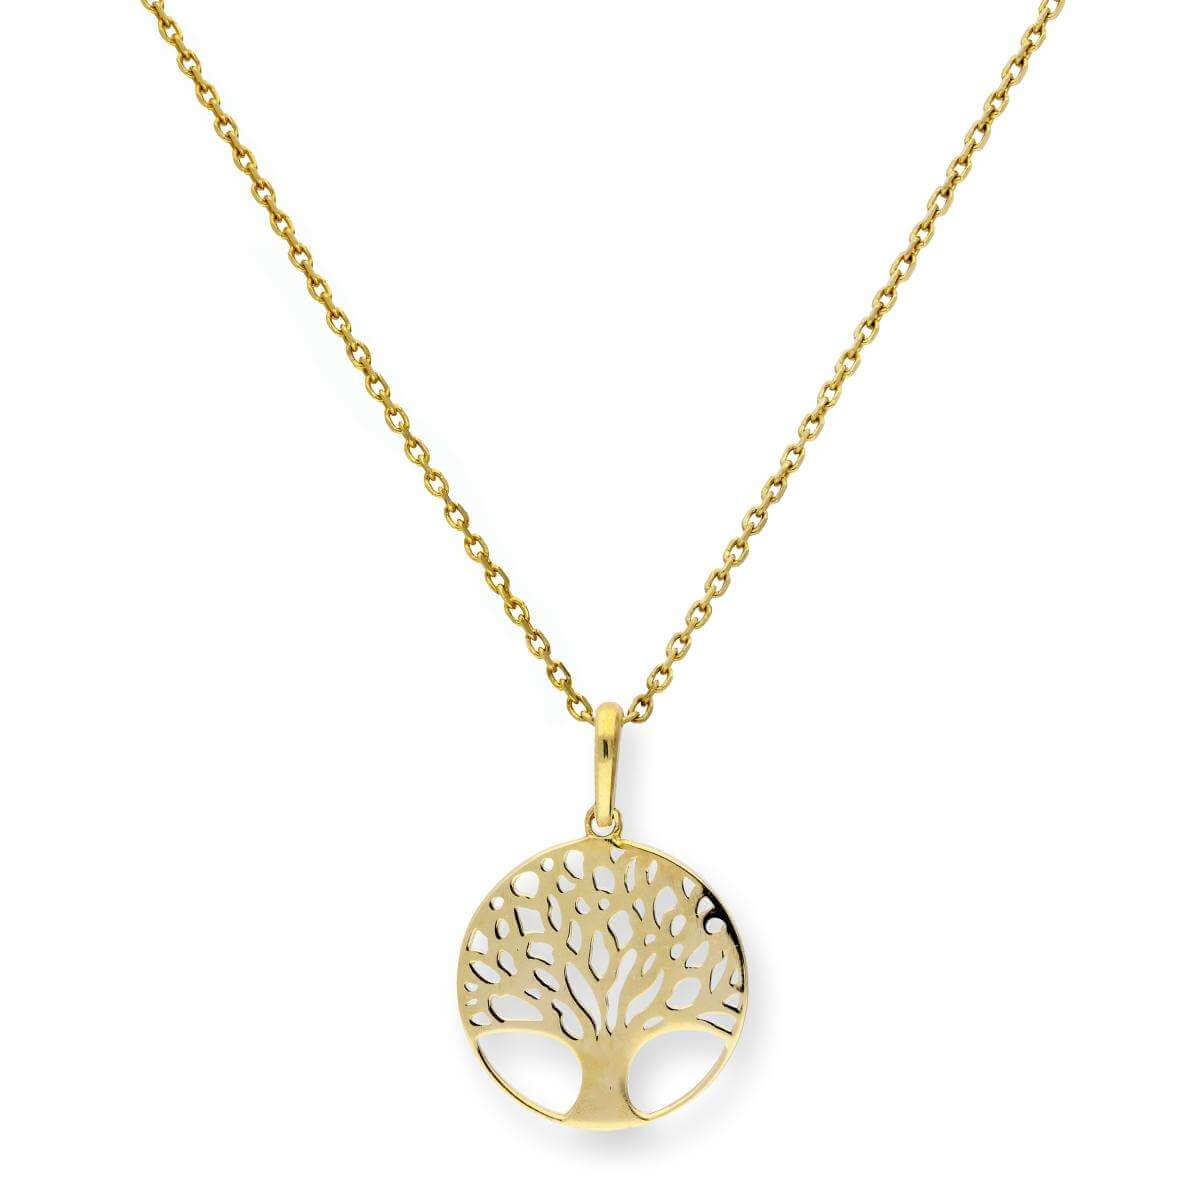 9ct Gold Tree of Life Pendant Necklace